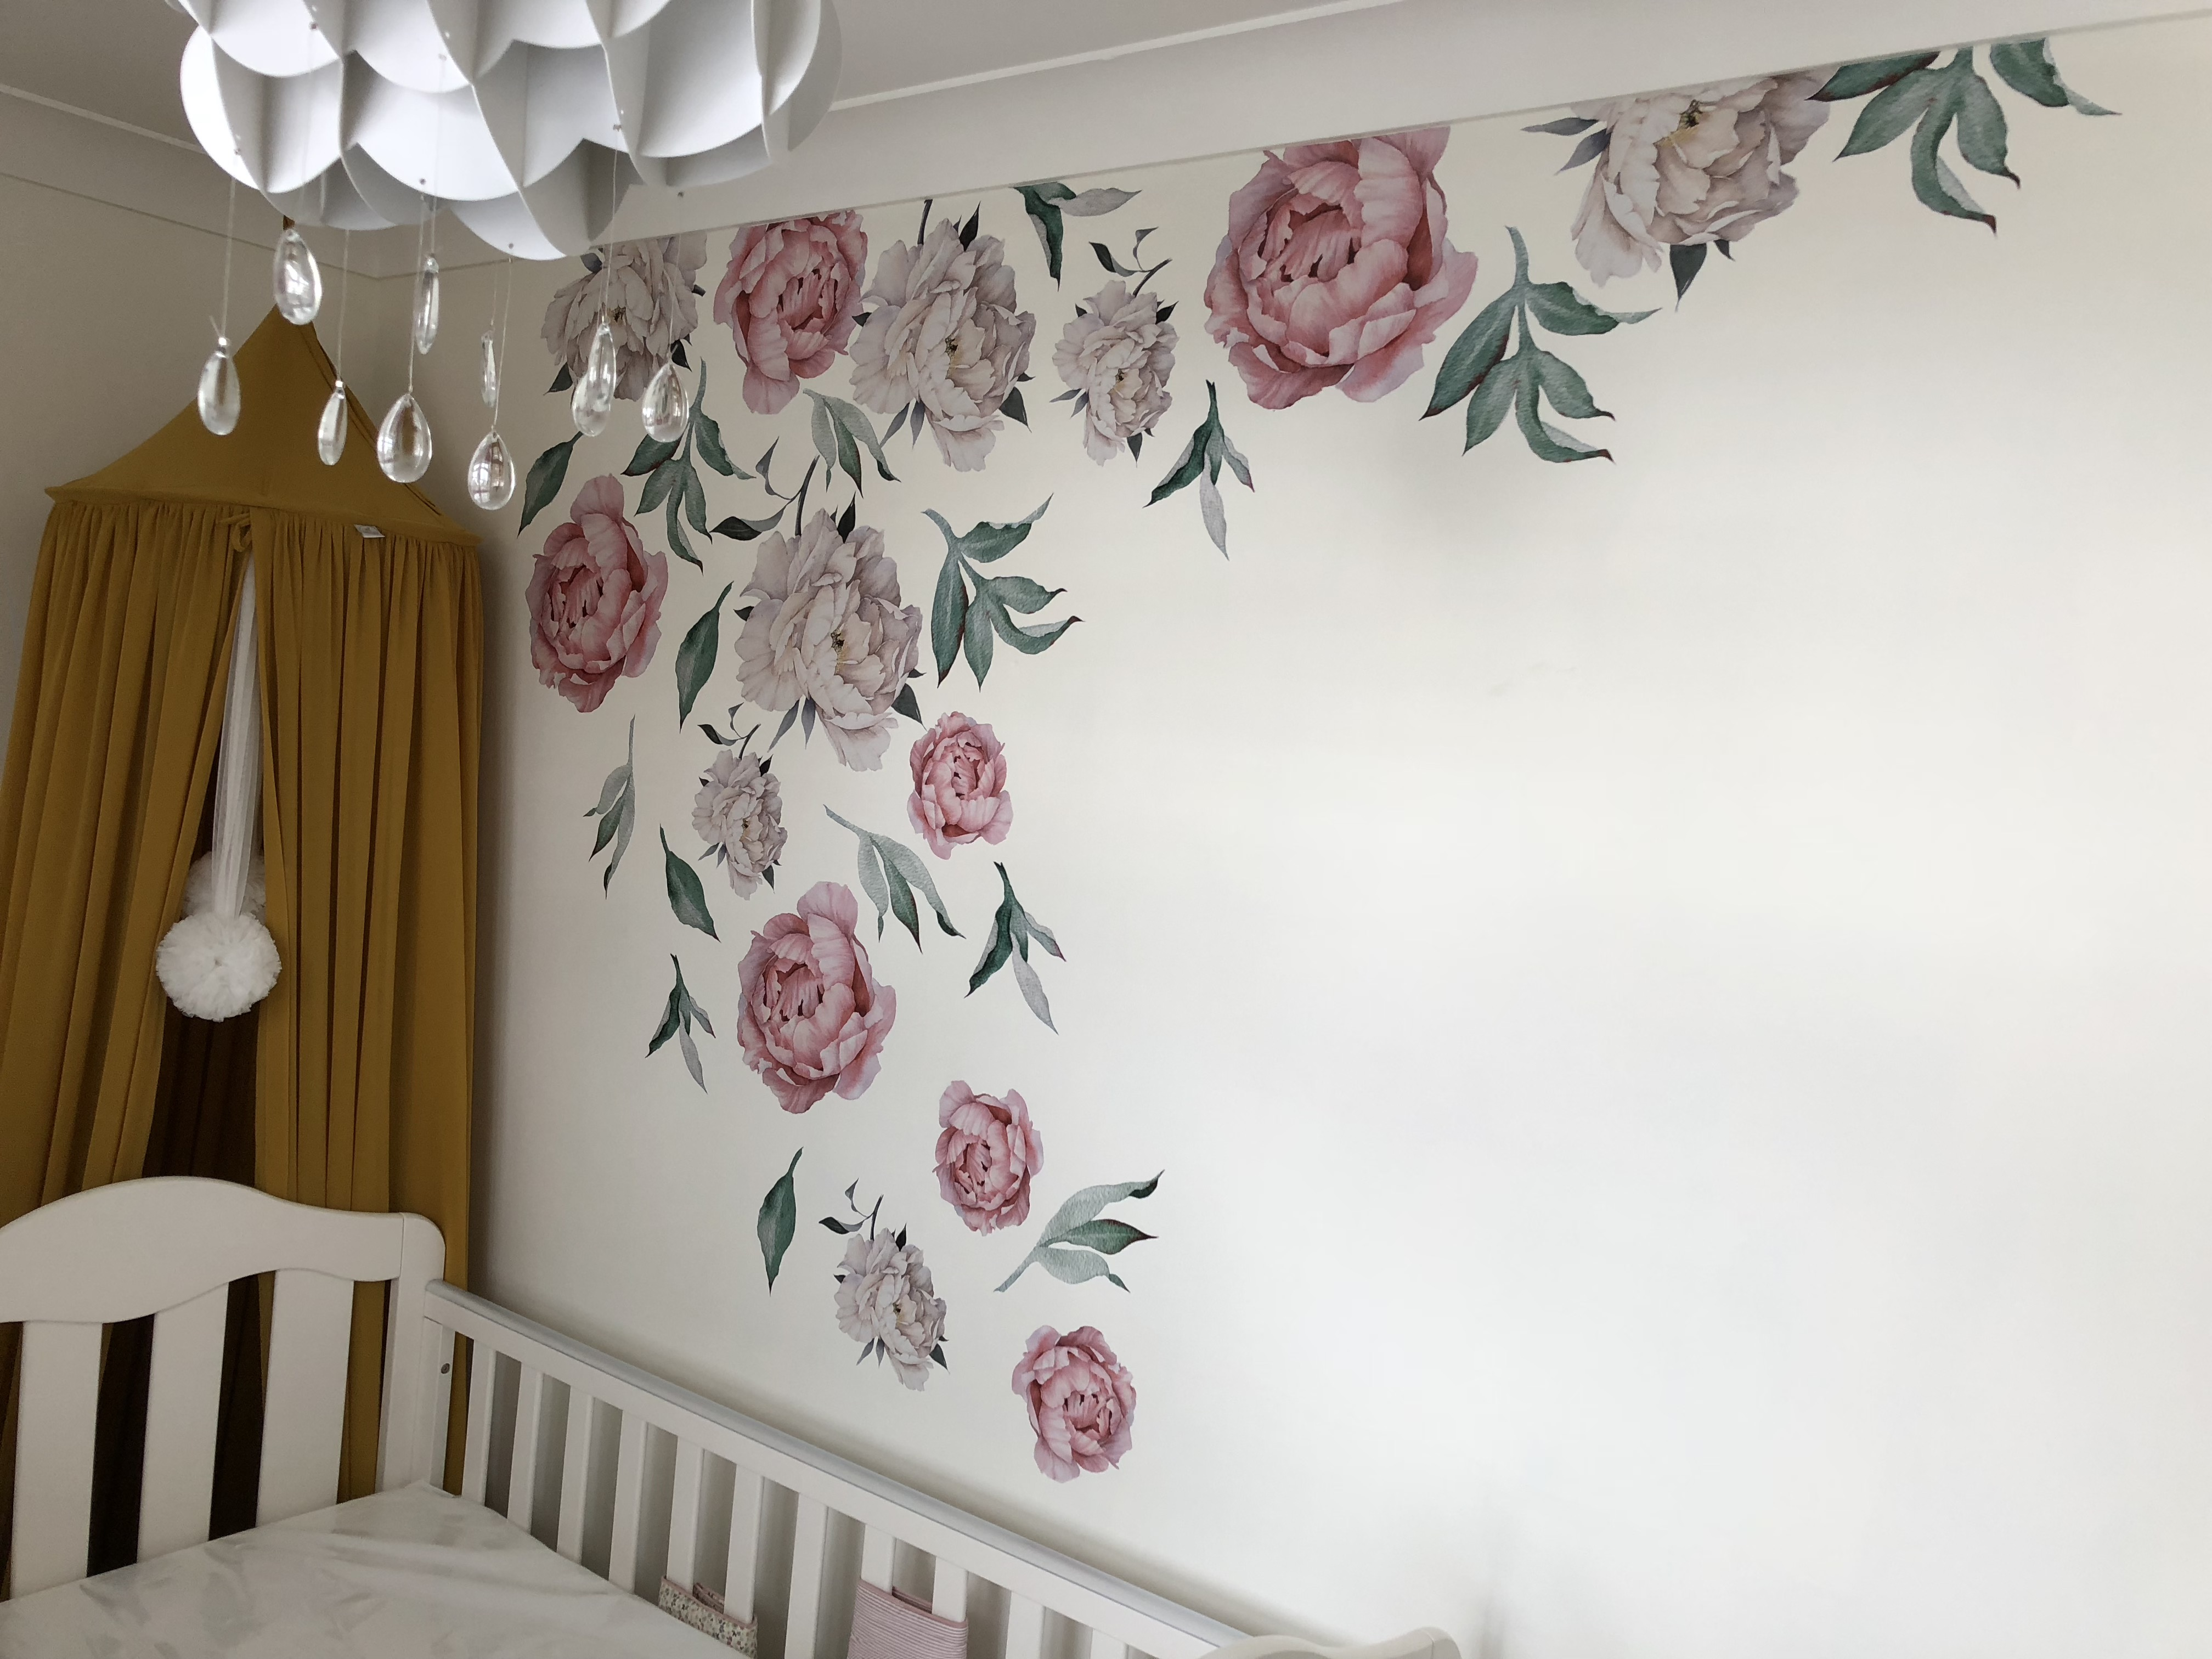 Wall Art in new nursery